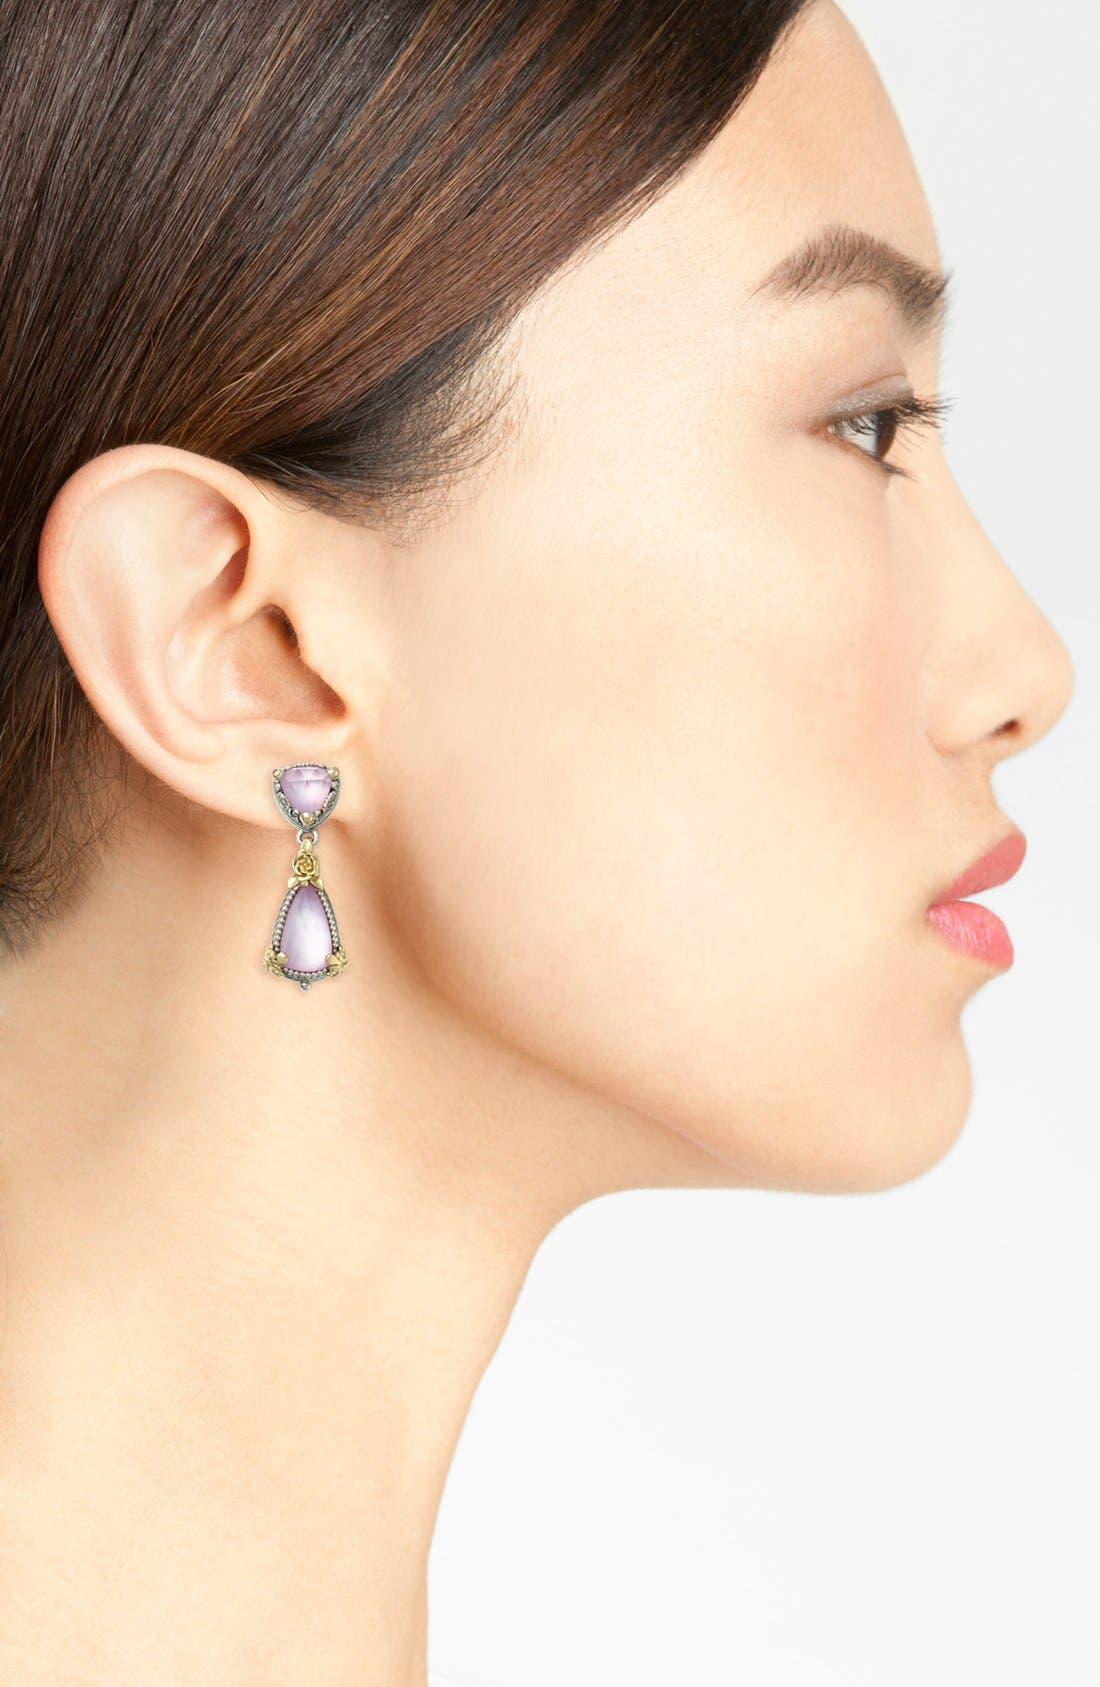 'Iliada' Double Drop Earrings,                             Alternate thumbnail 2, color,                             040